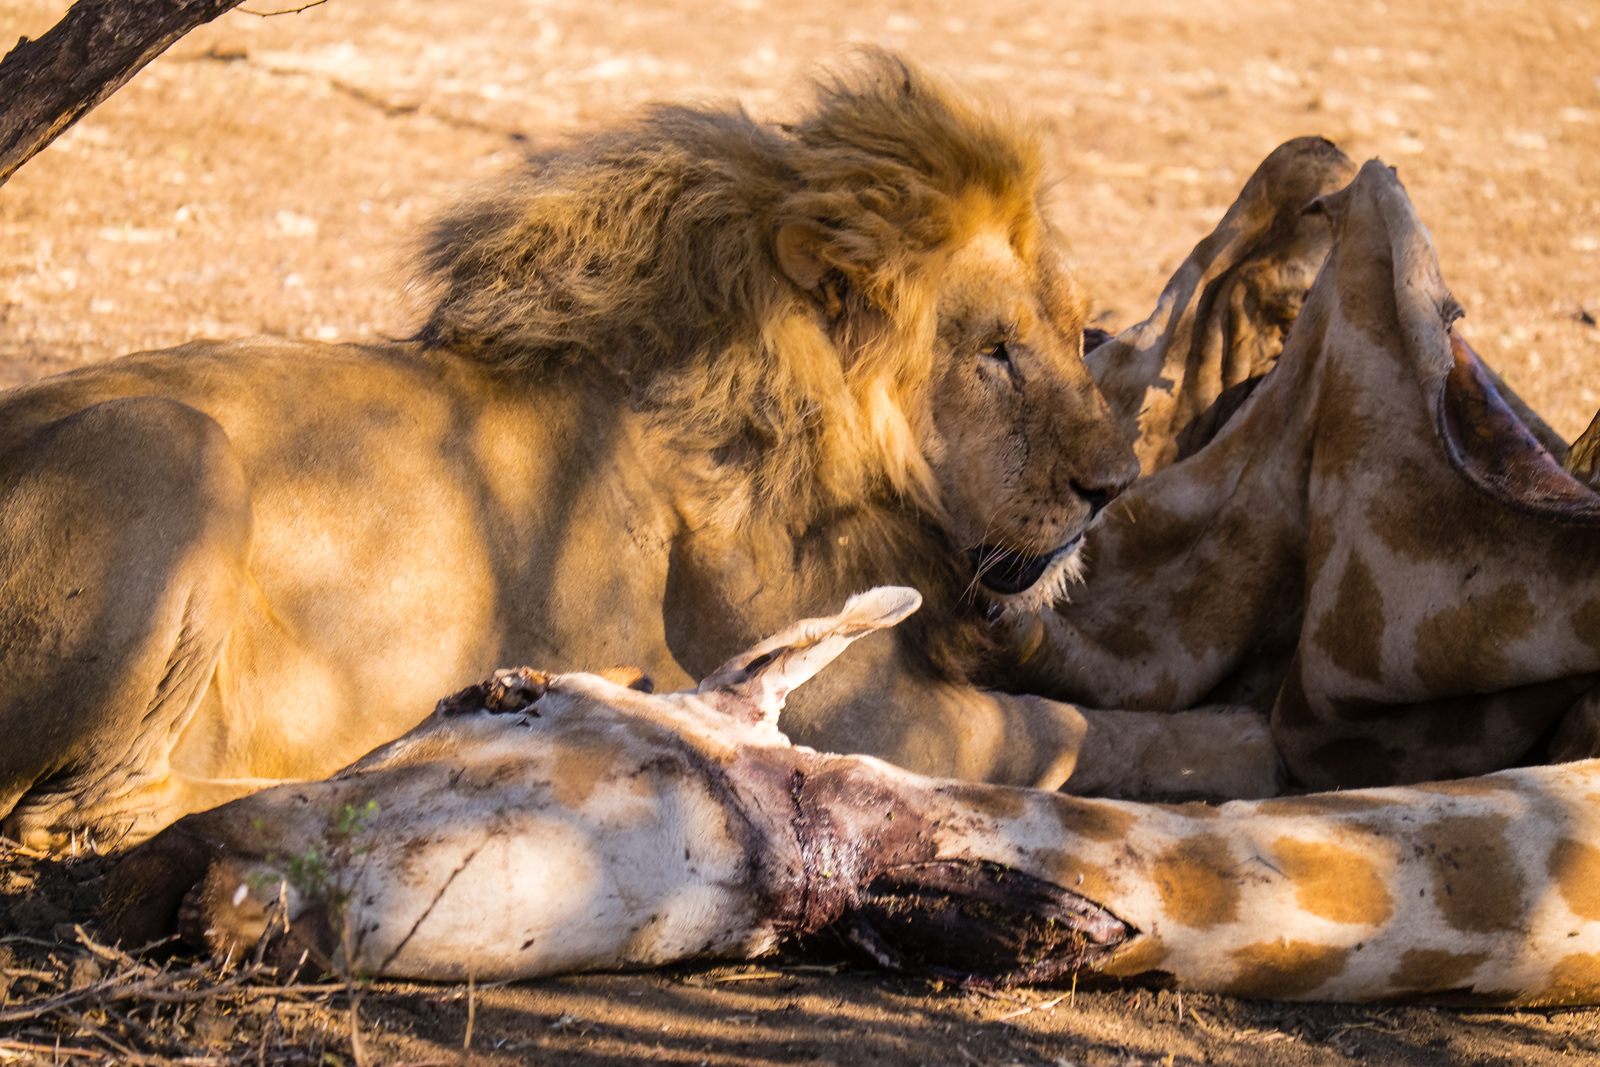 Lion eating a giraffe the pride has killed